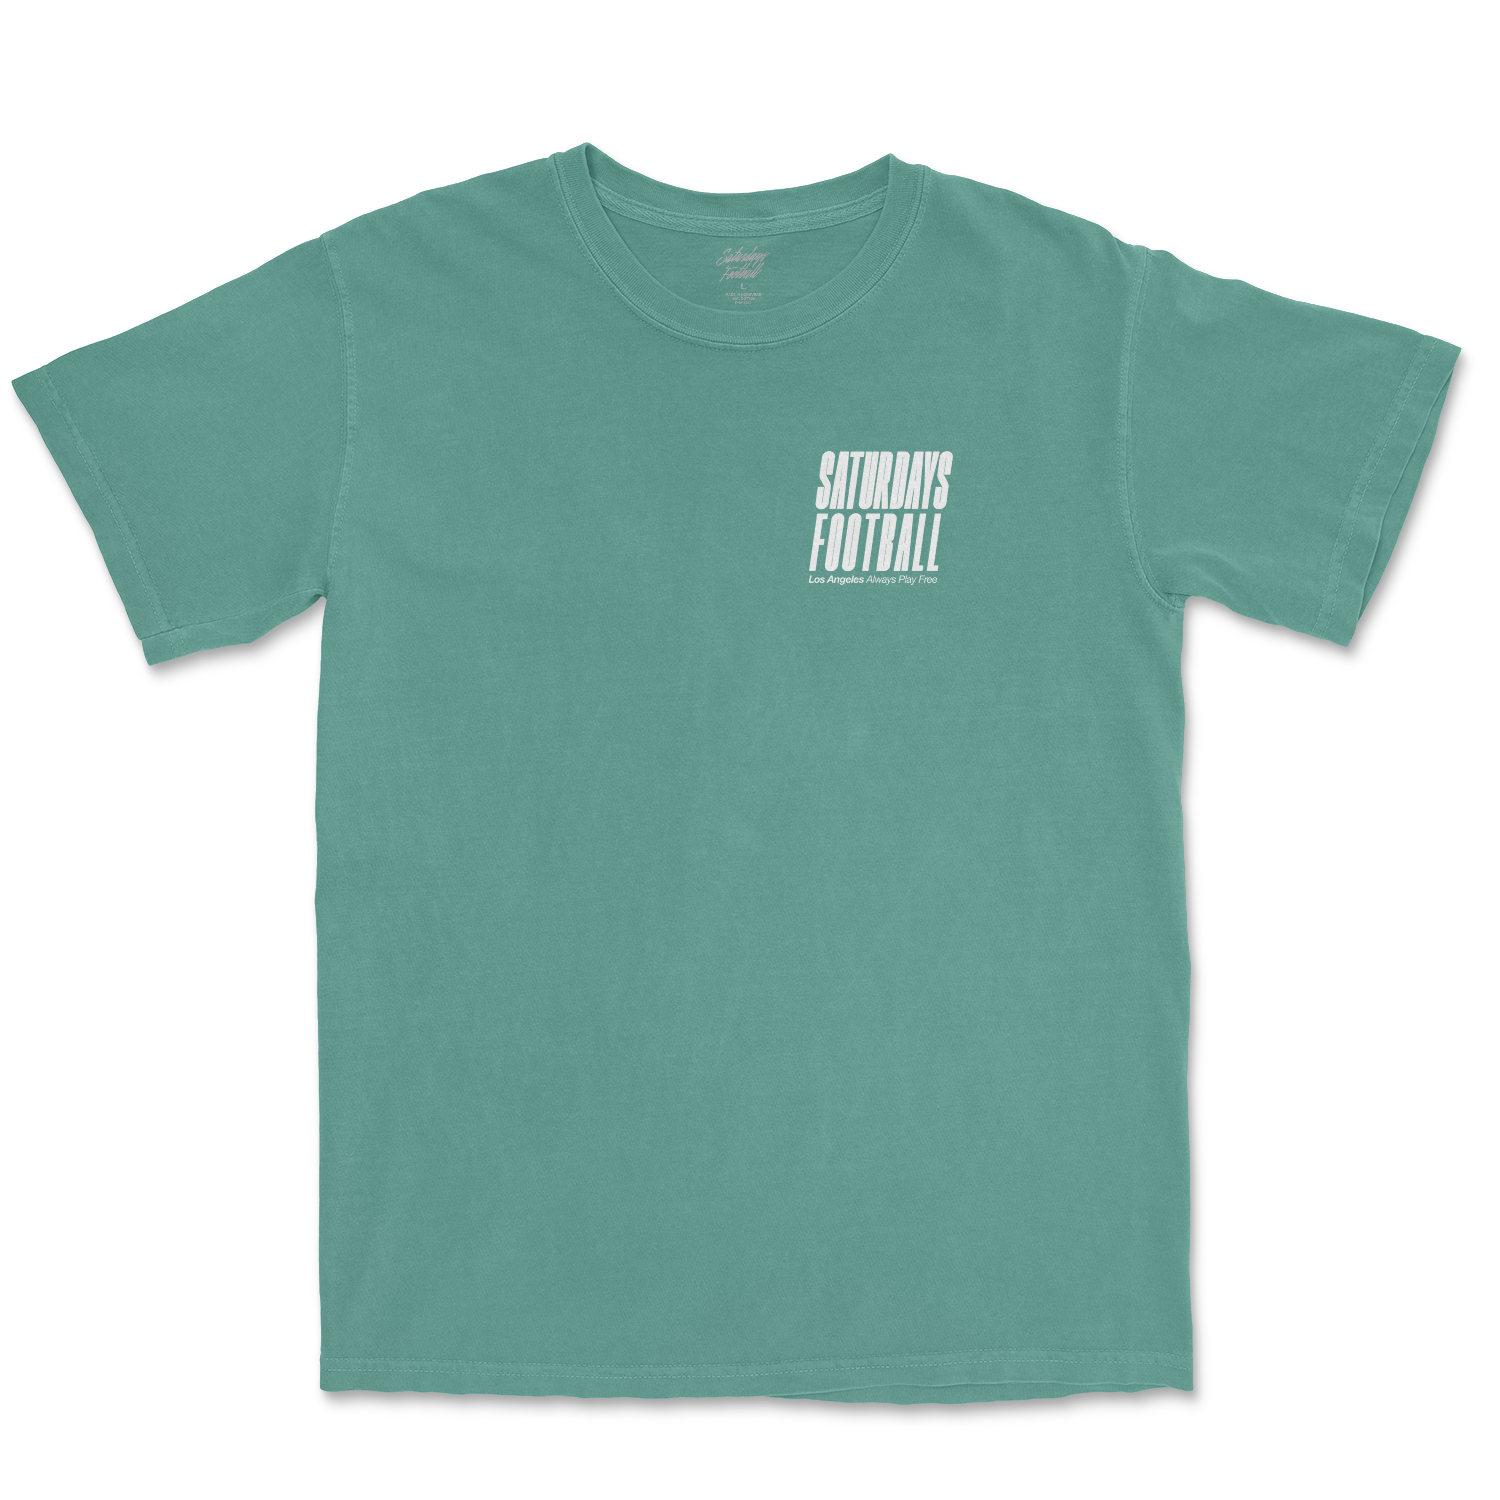 Saturdays Football Los Angeles Pigment Dyed T-Shirt